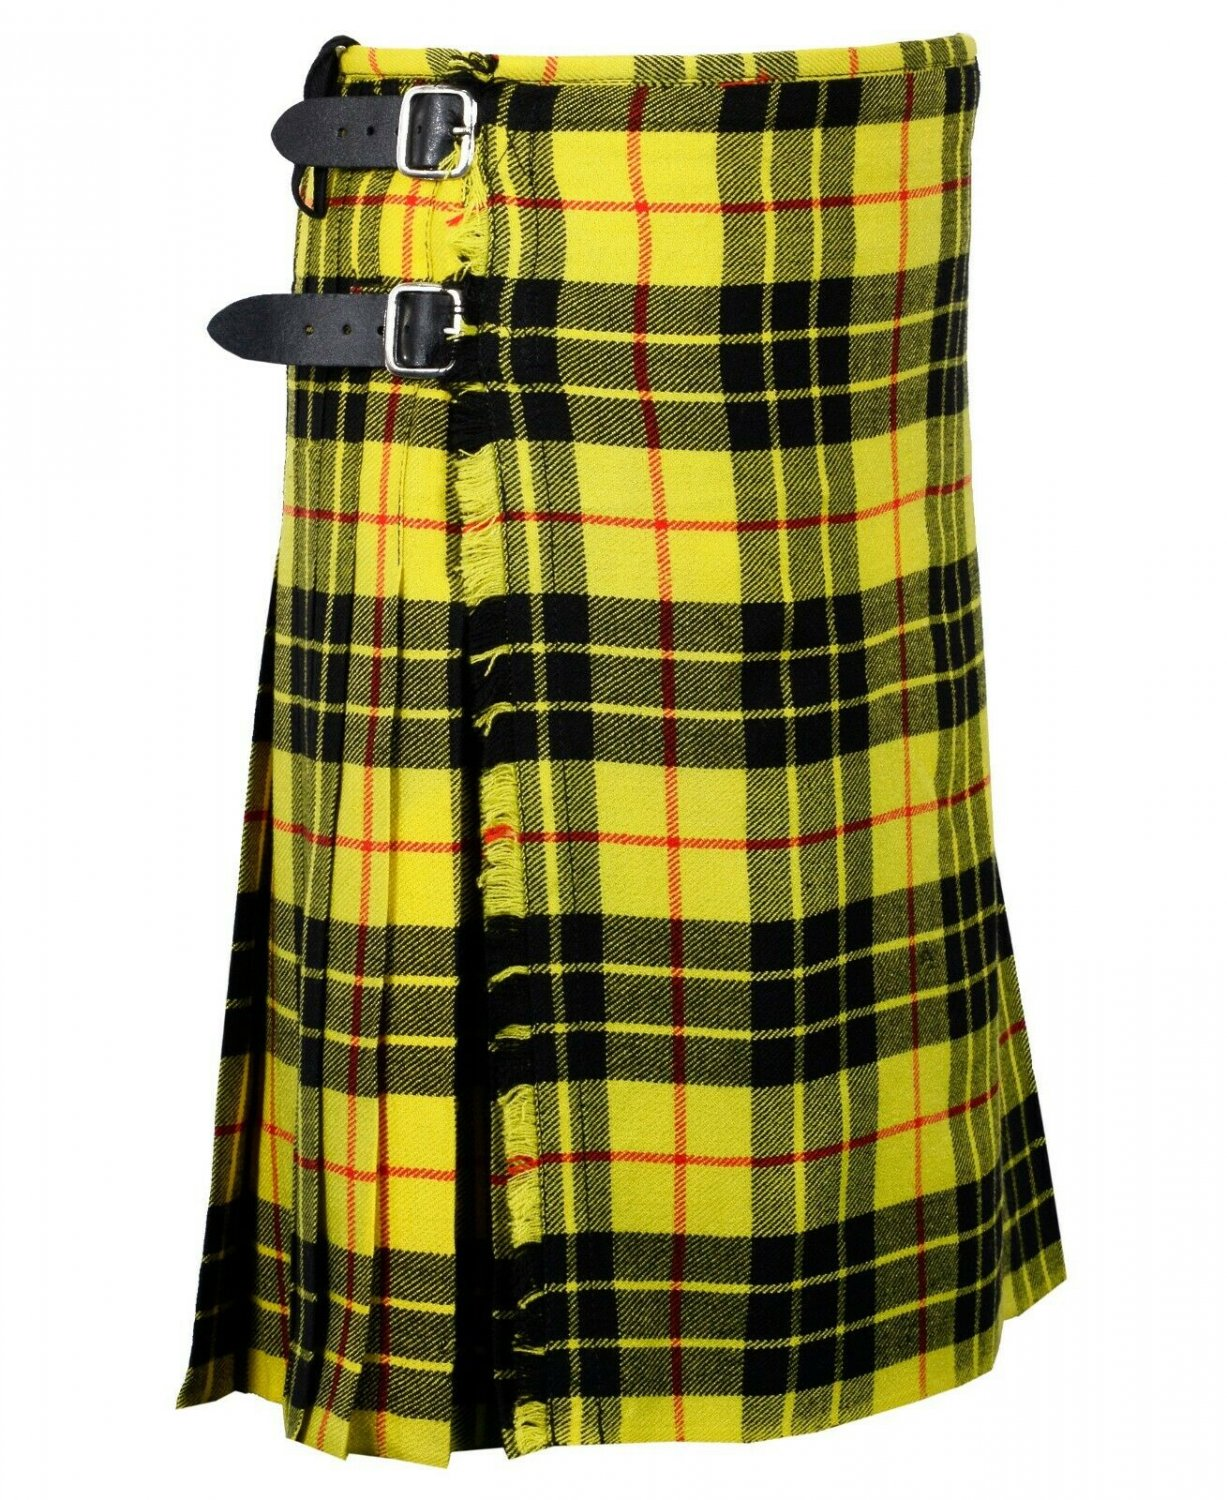 30 Inches Waist Traditional 8 Yard Handmade Scottish Kilt For Men - Macleod Of Lewis Tartan